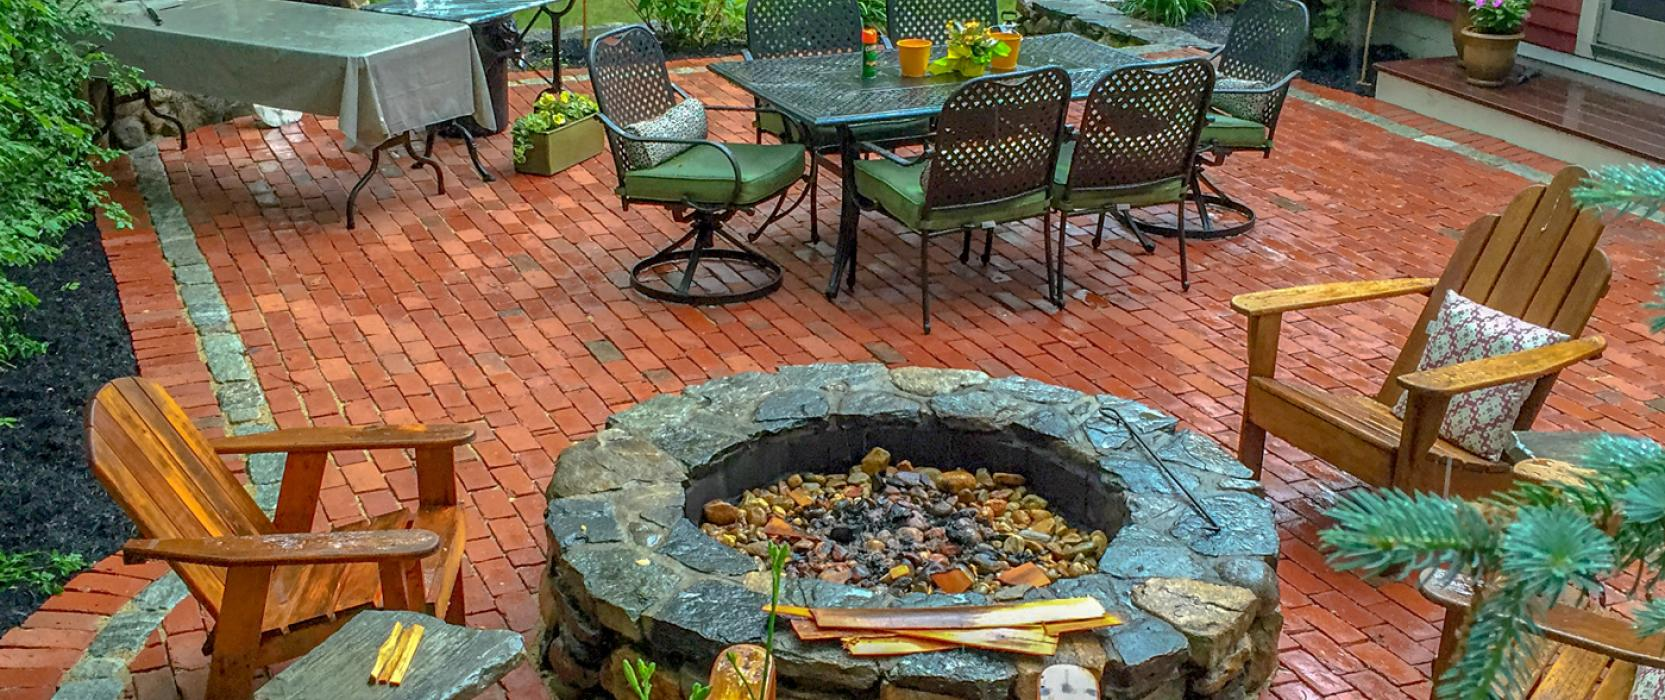 Outdoor design tips by Plymouth Quarries